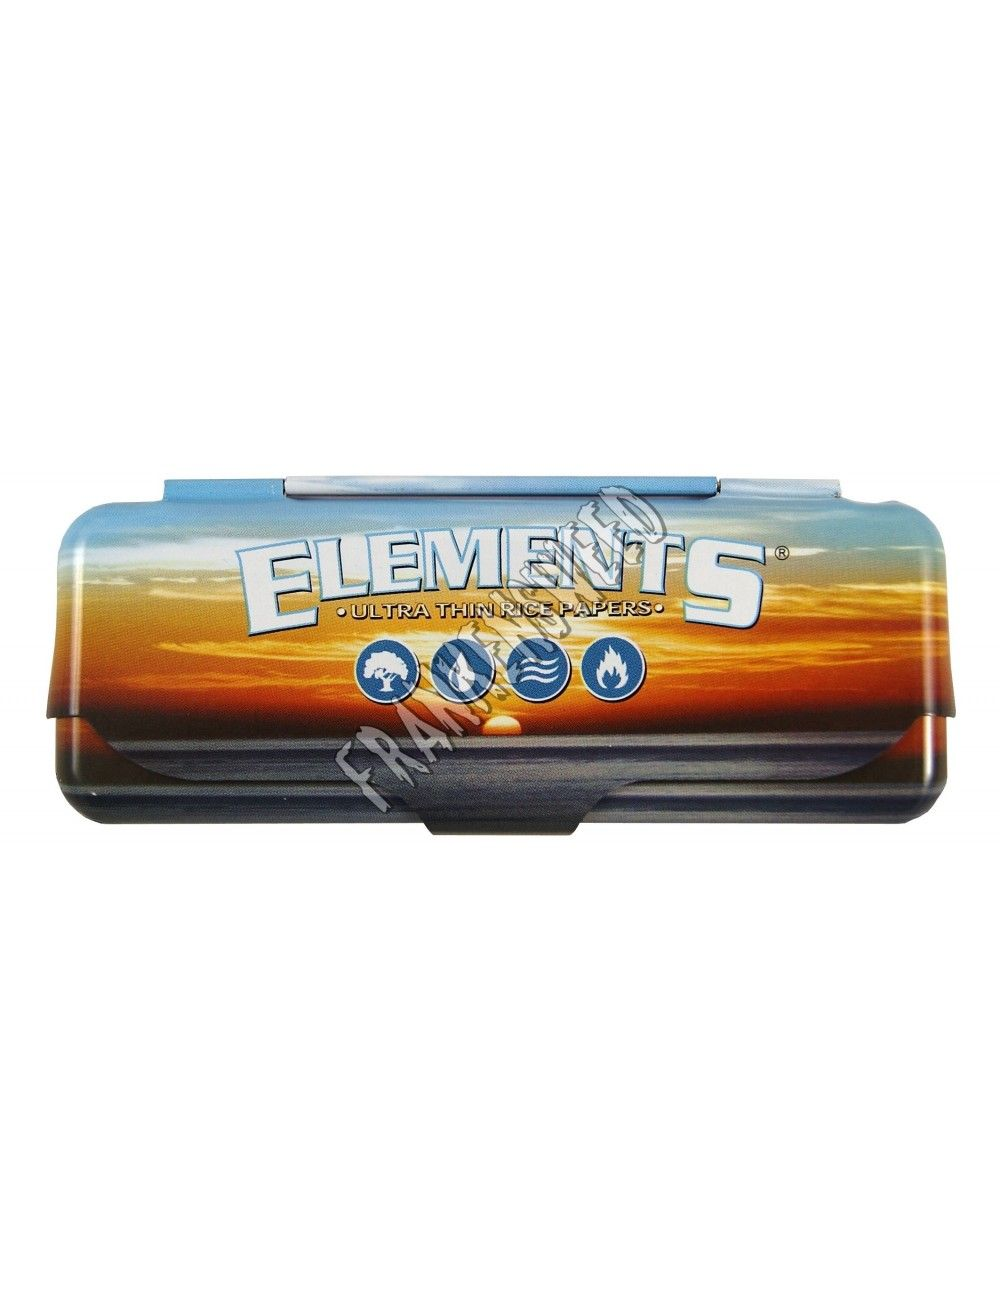 Elements 1¼ Metal Case